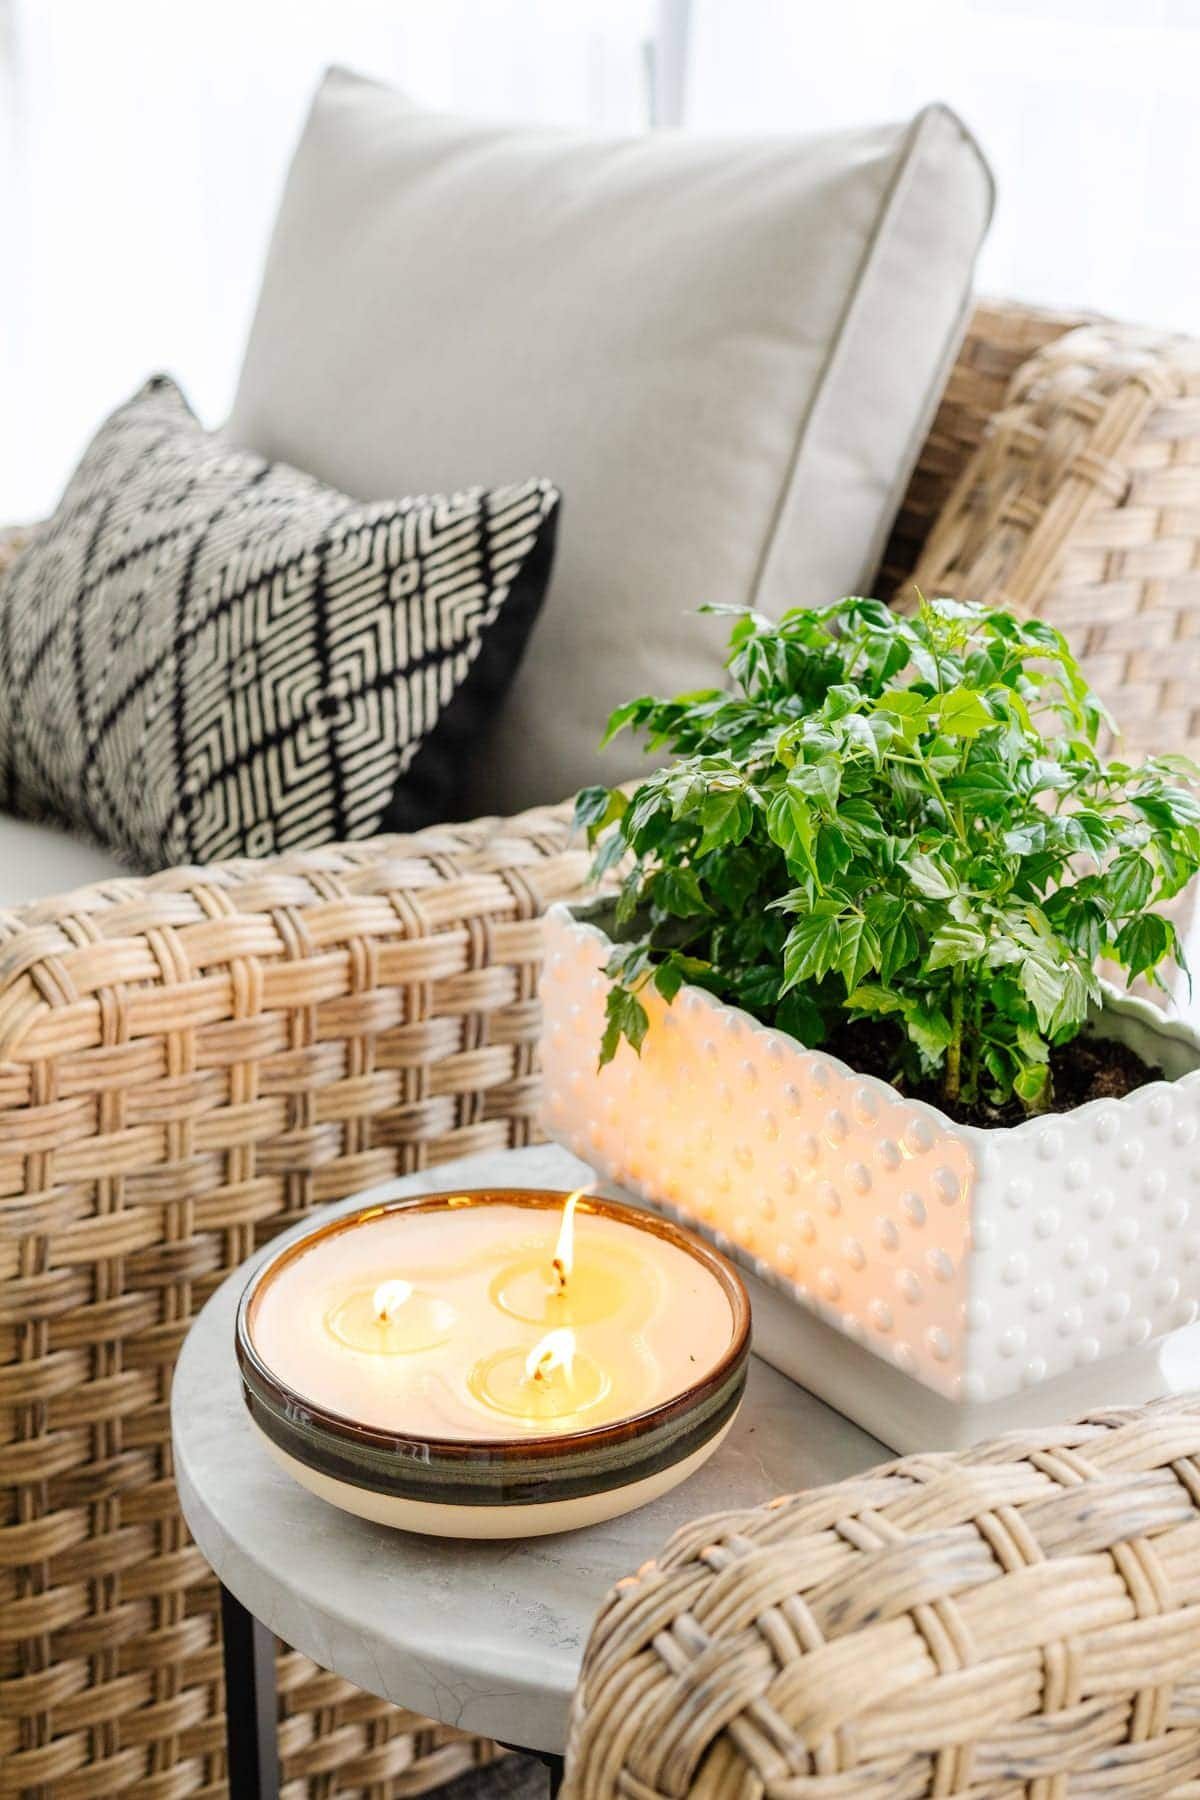 citronella candle and potted plant